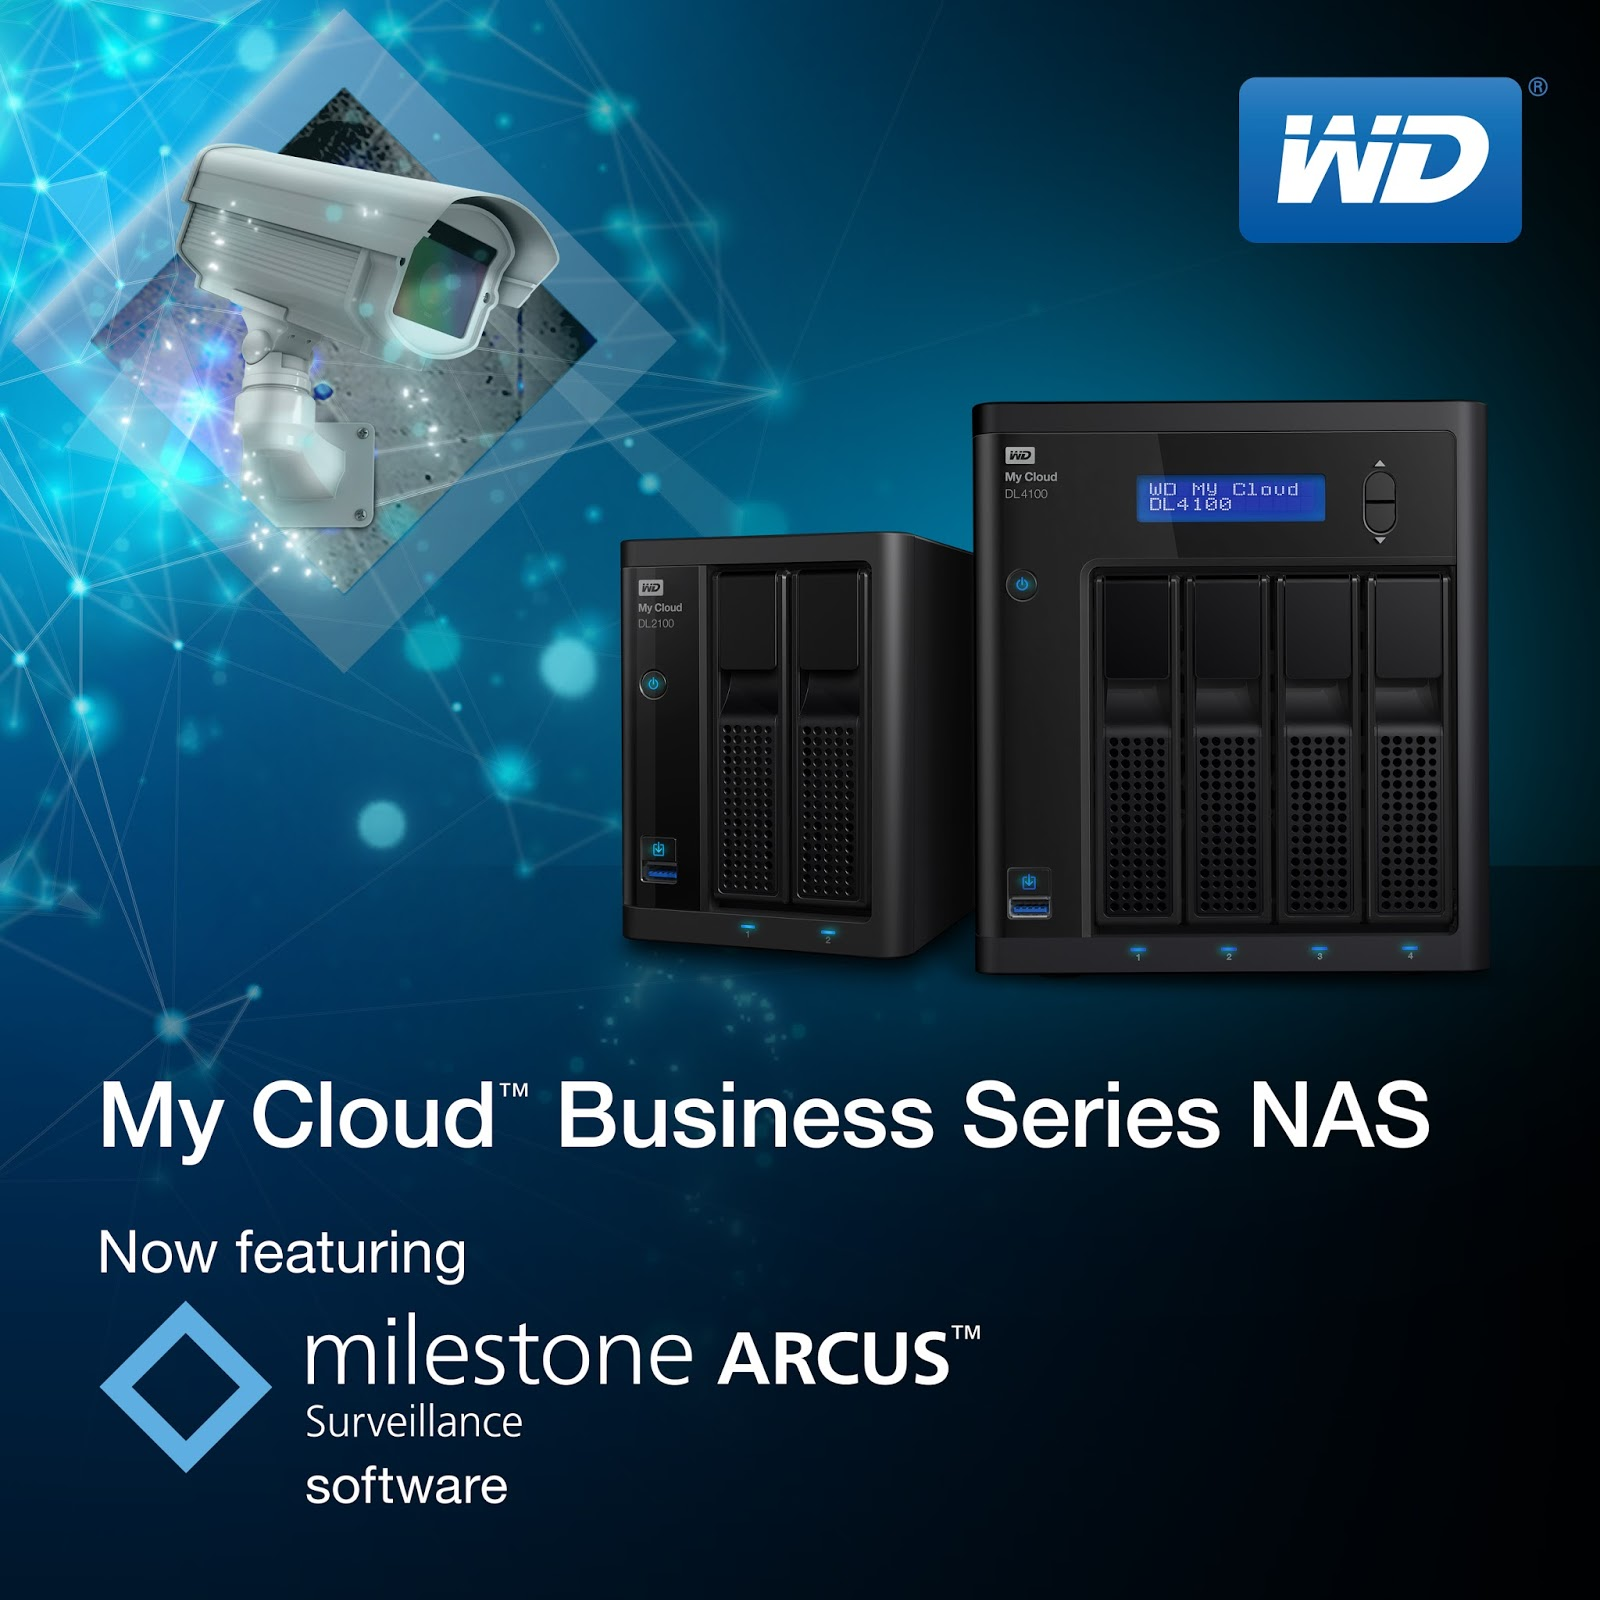 WD My My Cloud Business Series NAS with Milestone Arcus Video Surveillance Software